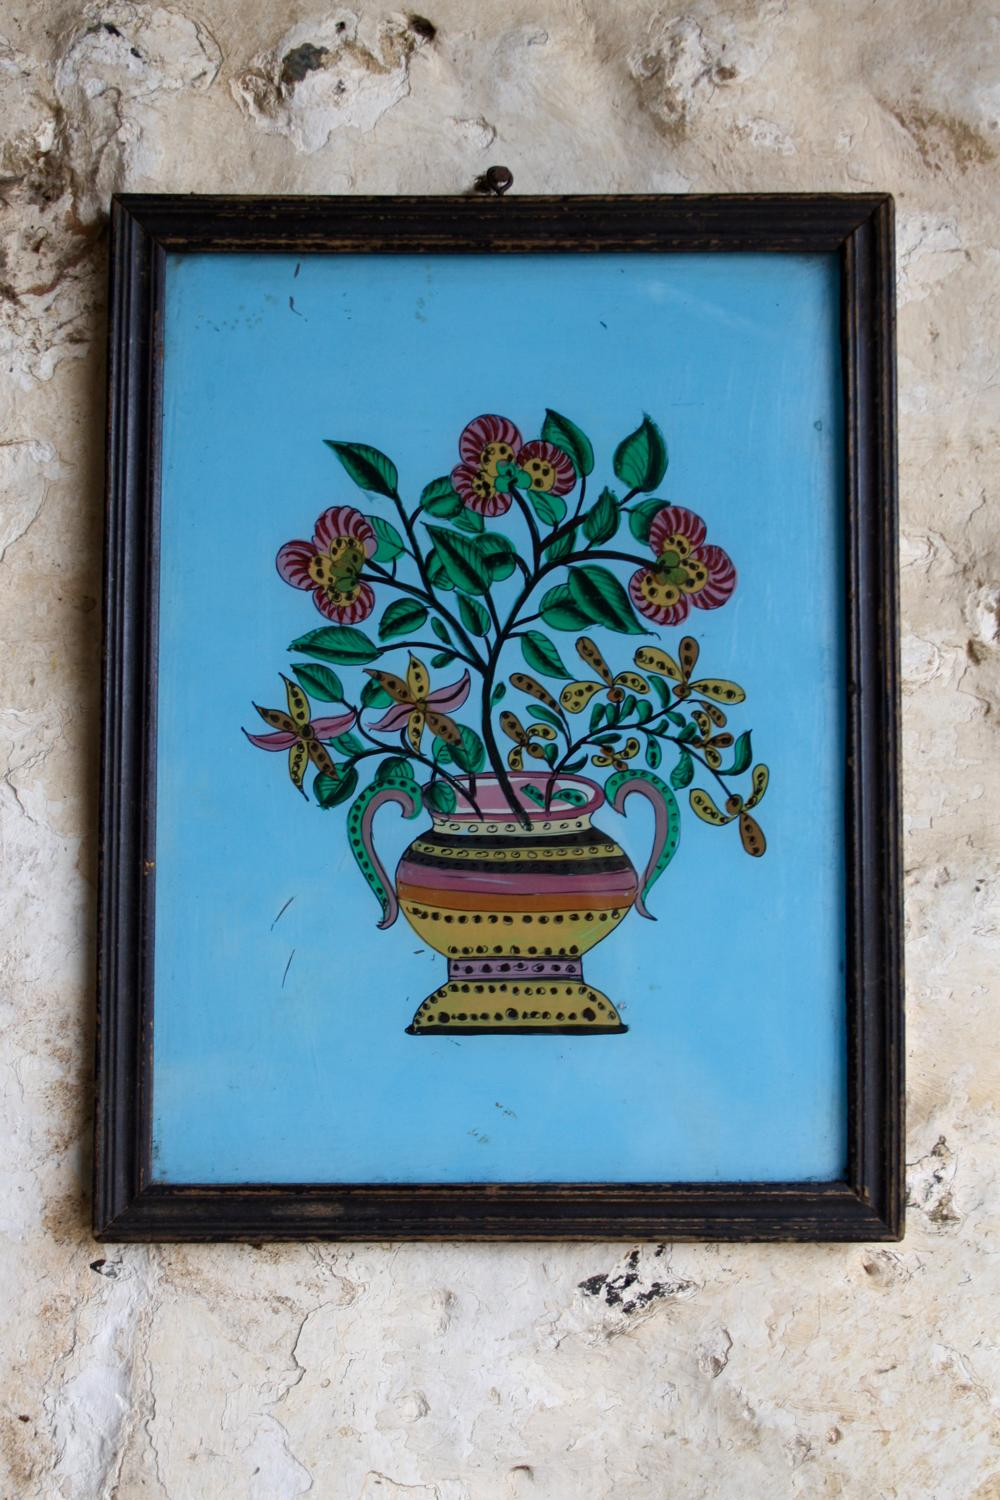 Indian glass painting - flowers